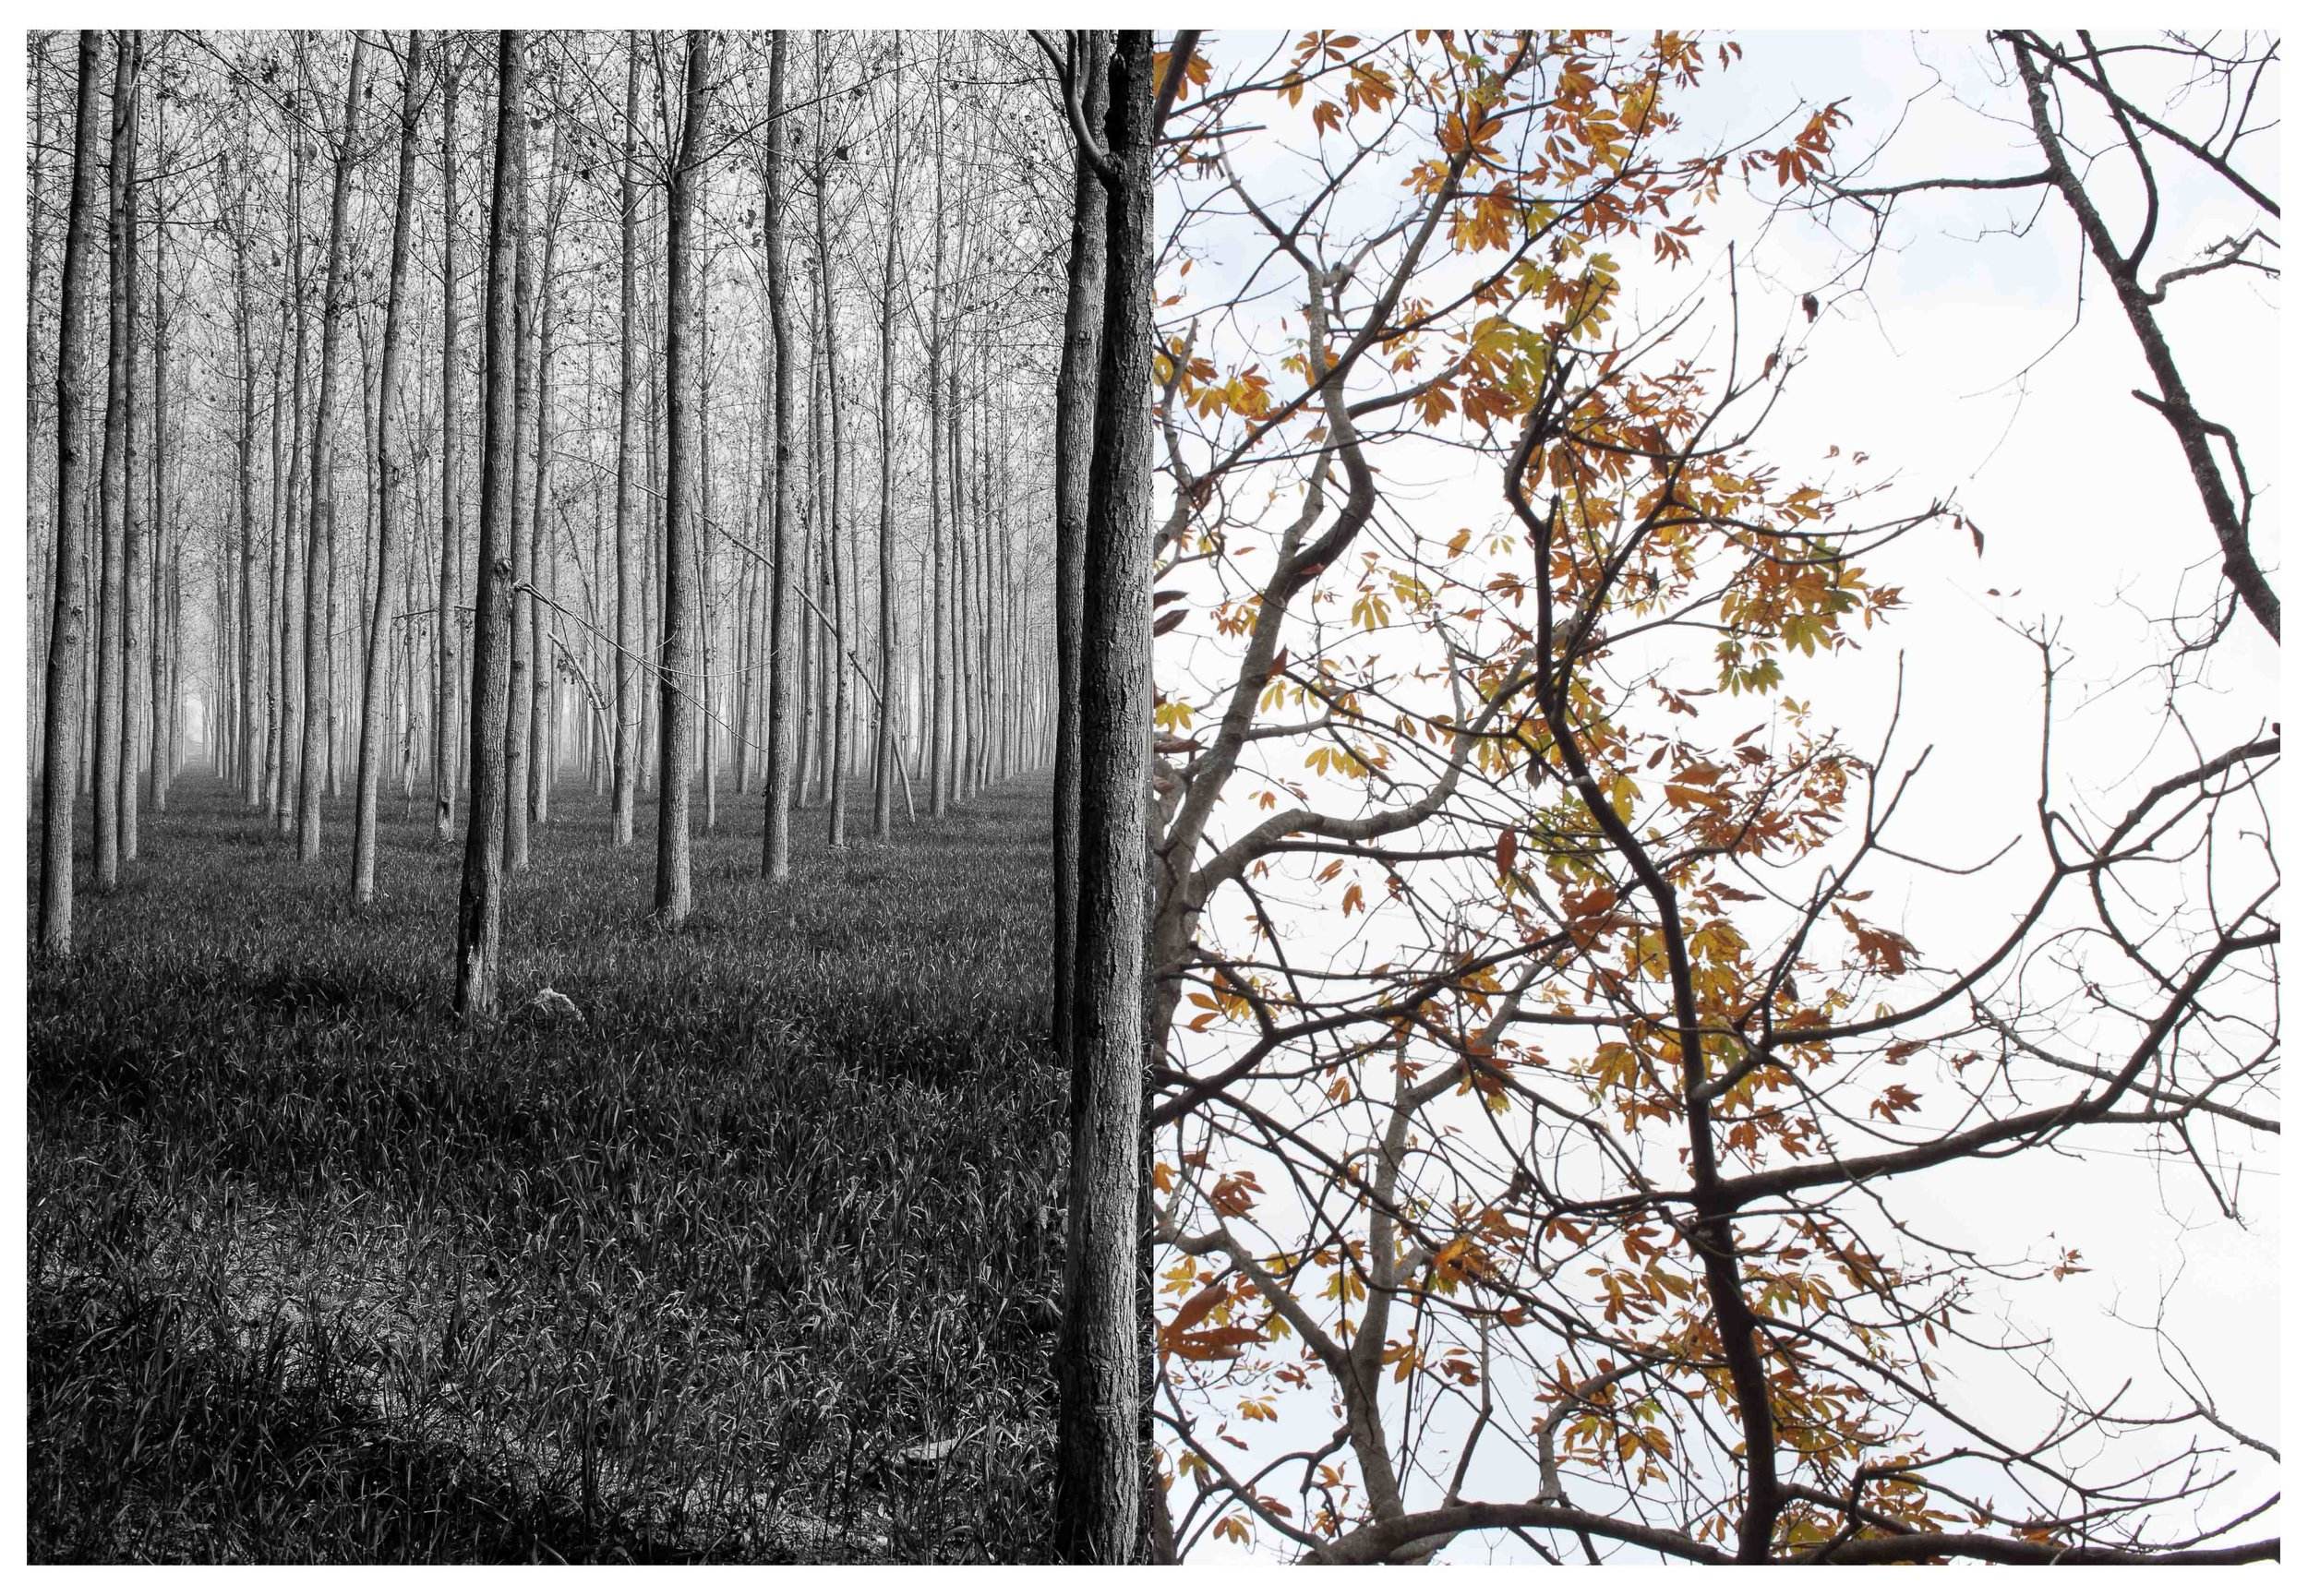 It's always wonderful photographing trees. Especially when they're undergoing transition in different seasons. Here's a diptych of two different kinds of trees in a different state of transition,  in Kaladhungi and Nainital, Uttarakhand. © Tanushree Singh